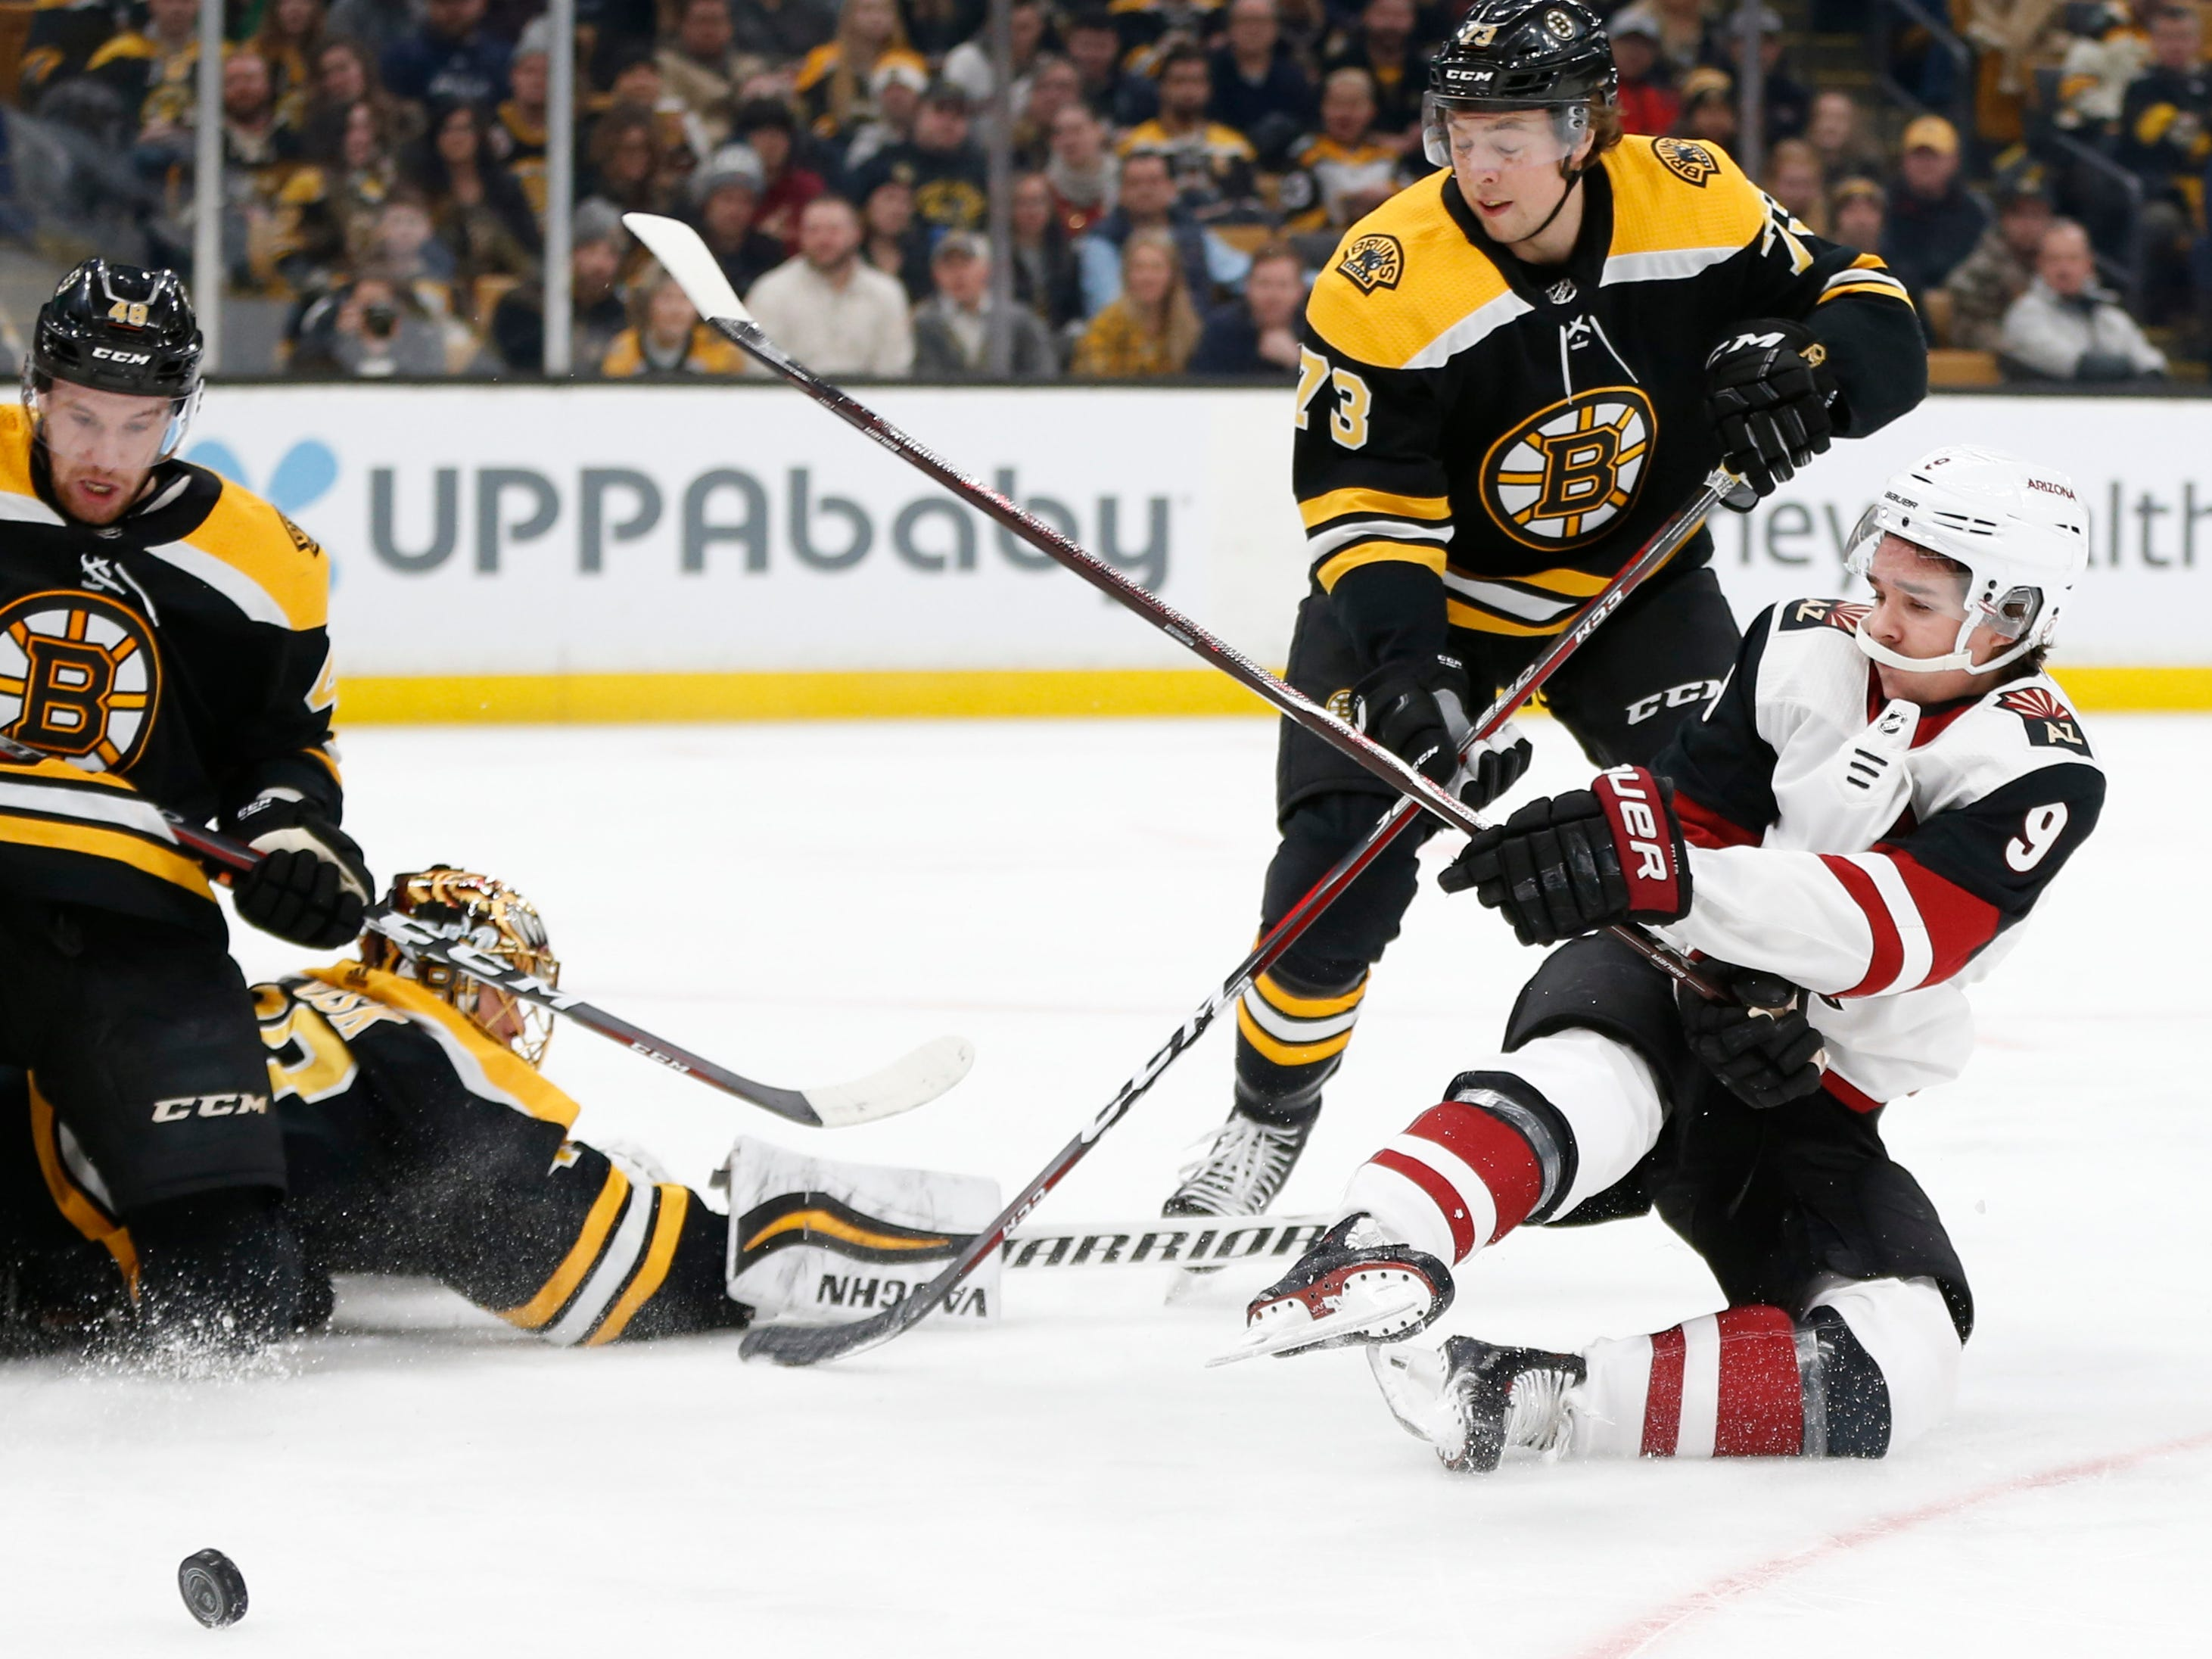 Dec 11, 2018; Boston, MA, USA; Arizona Coyotes center Clayton Keller (9) shoots towards Boston Bruins goaltender Tuukka Rask (40) while defended by defenseman Charlie McAvoy (73) during the first period at TD Garden. Mandatory Credit: Greg M. Cooper-USA TODAY Sports